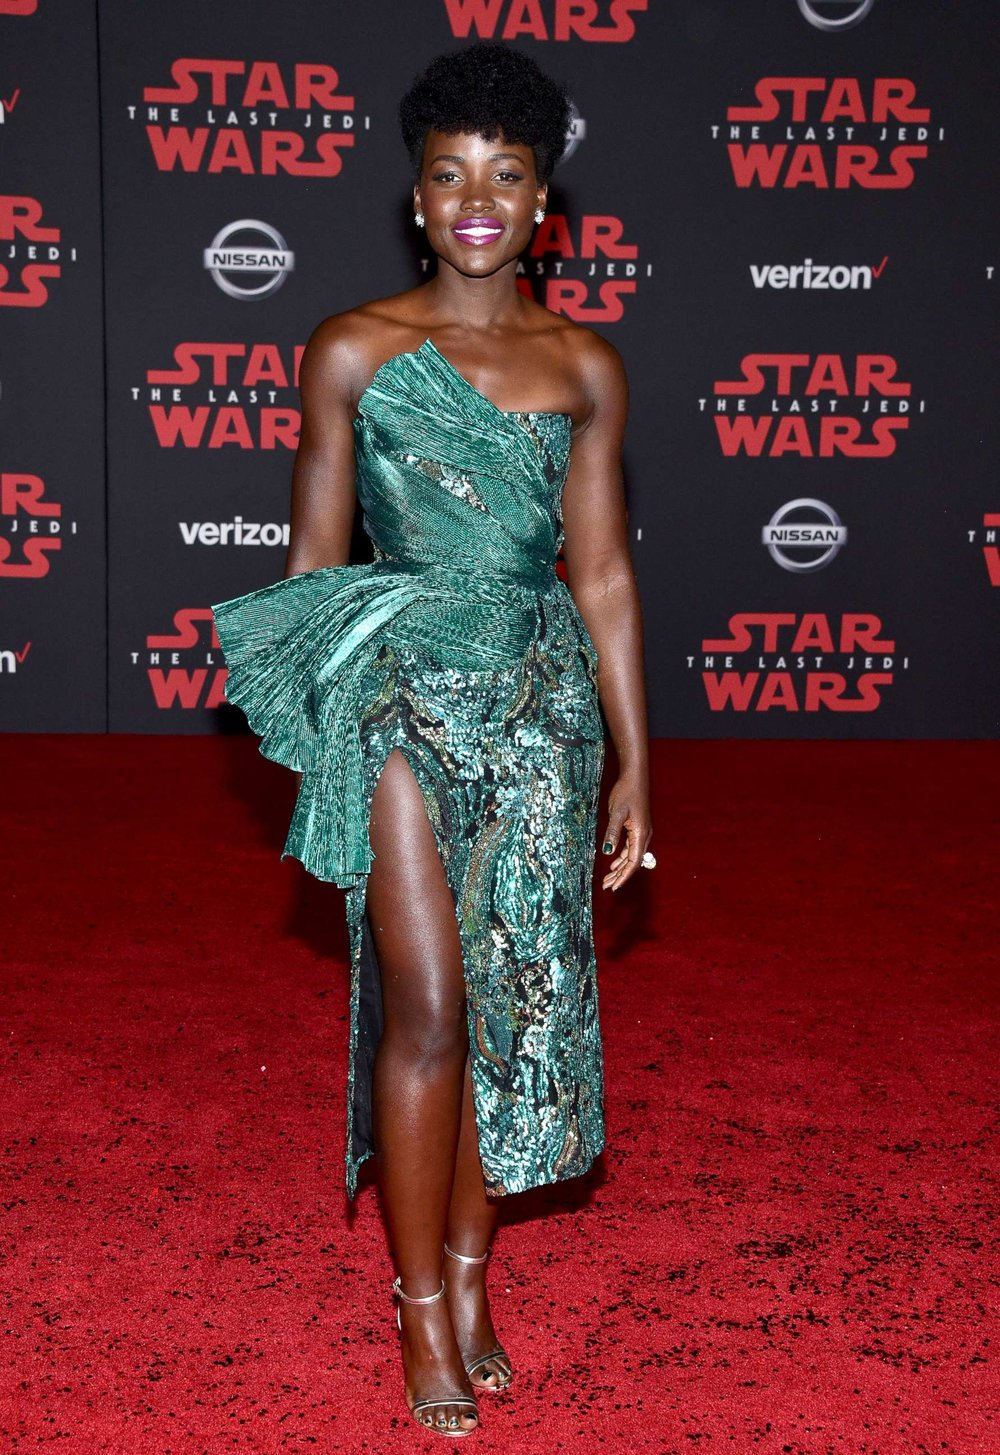 Lupita Nyong'o - Playing Maz Kanata, Lupita comes back for her second Star War in a beautiful emerald dress. That asymmetrical look shows off her leg beautiuflly.